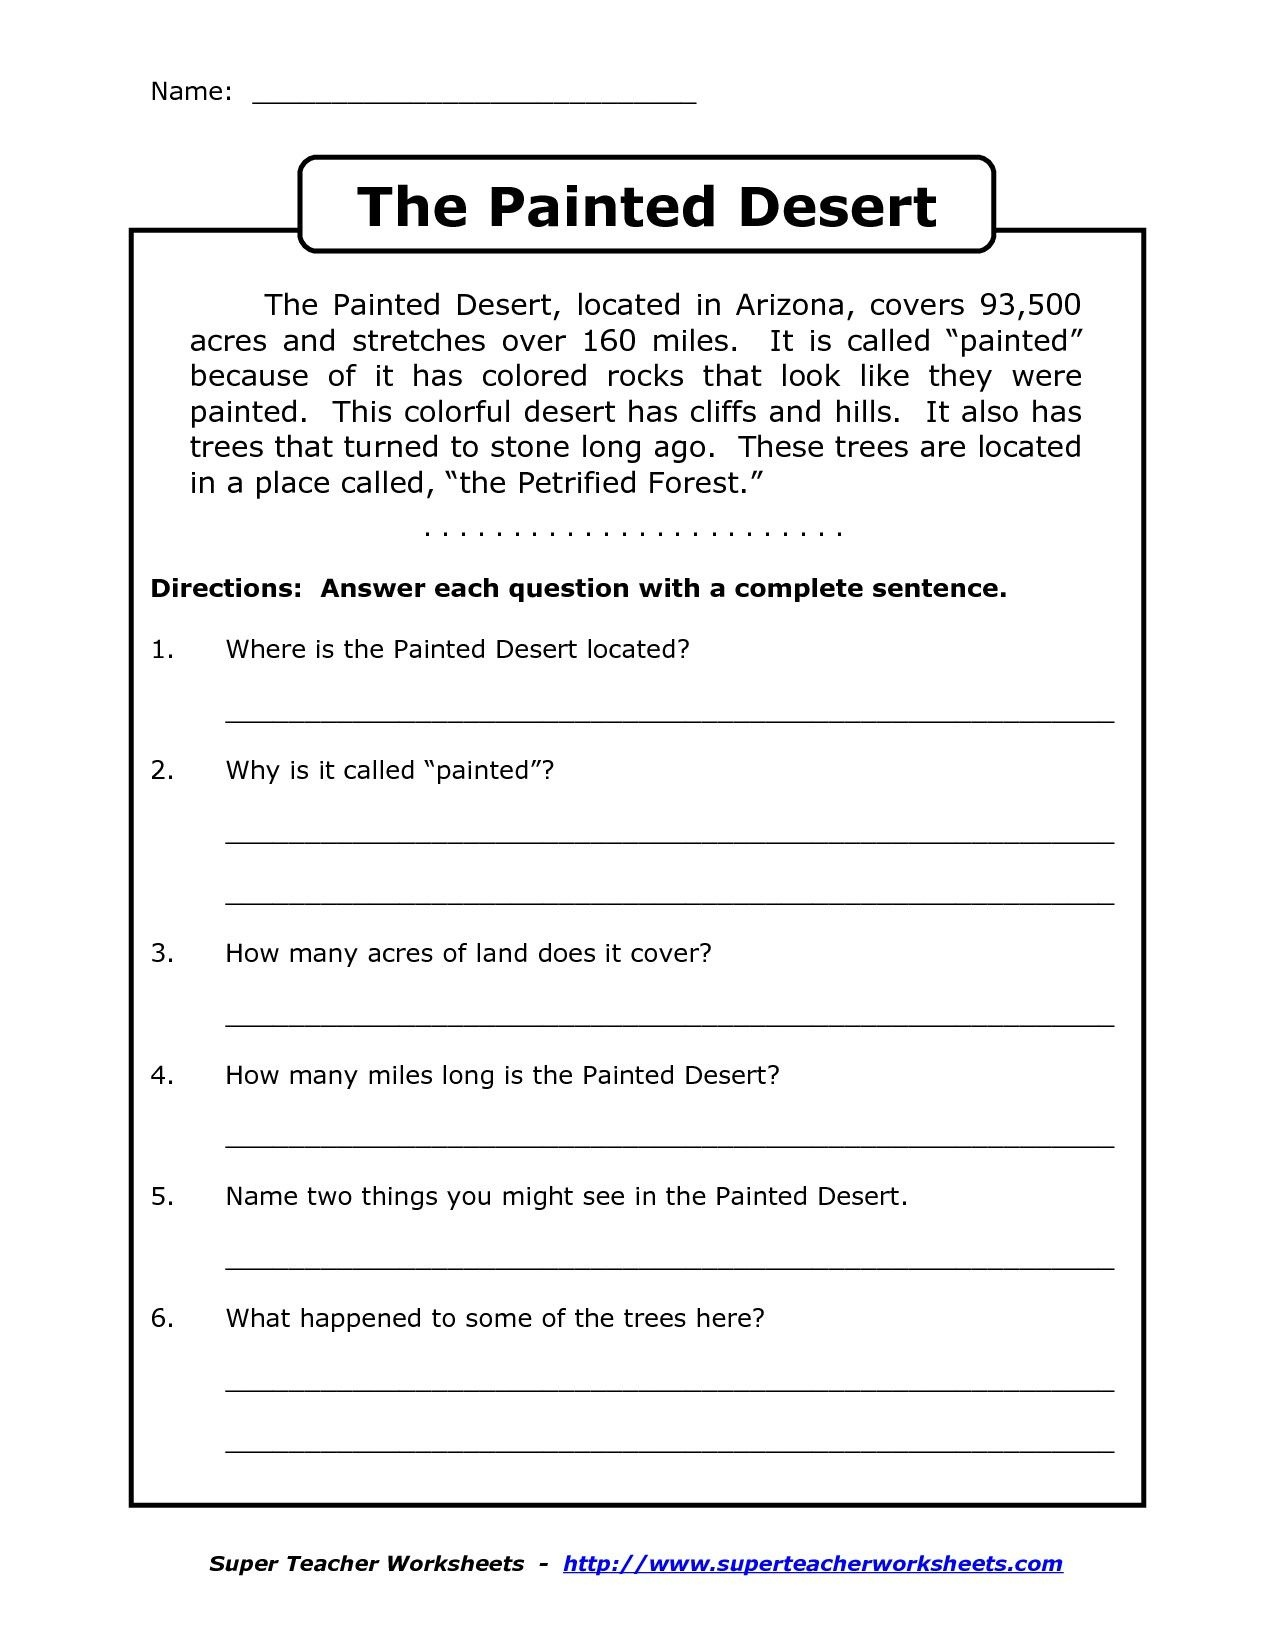 Image Result For Free Printable Worksheets For Grade 4 Comprehension - Free Printable Ela Worksheets